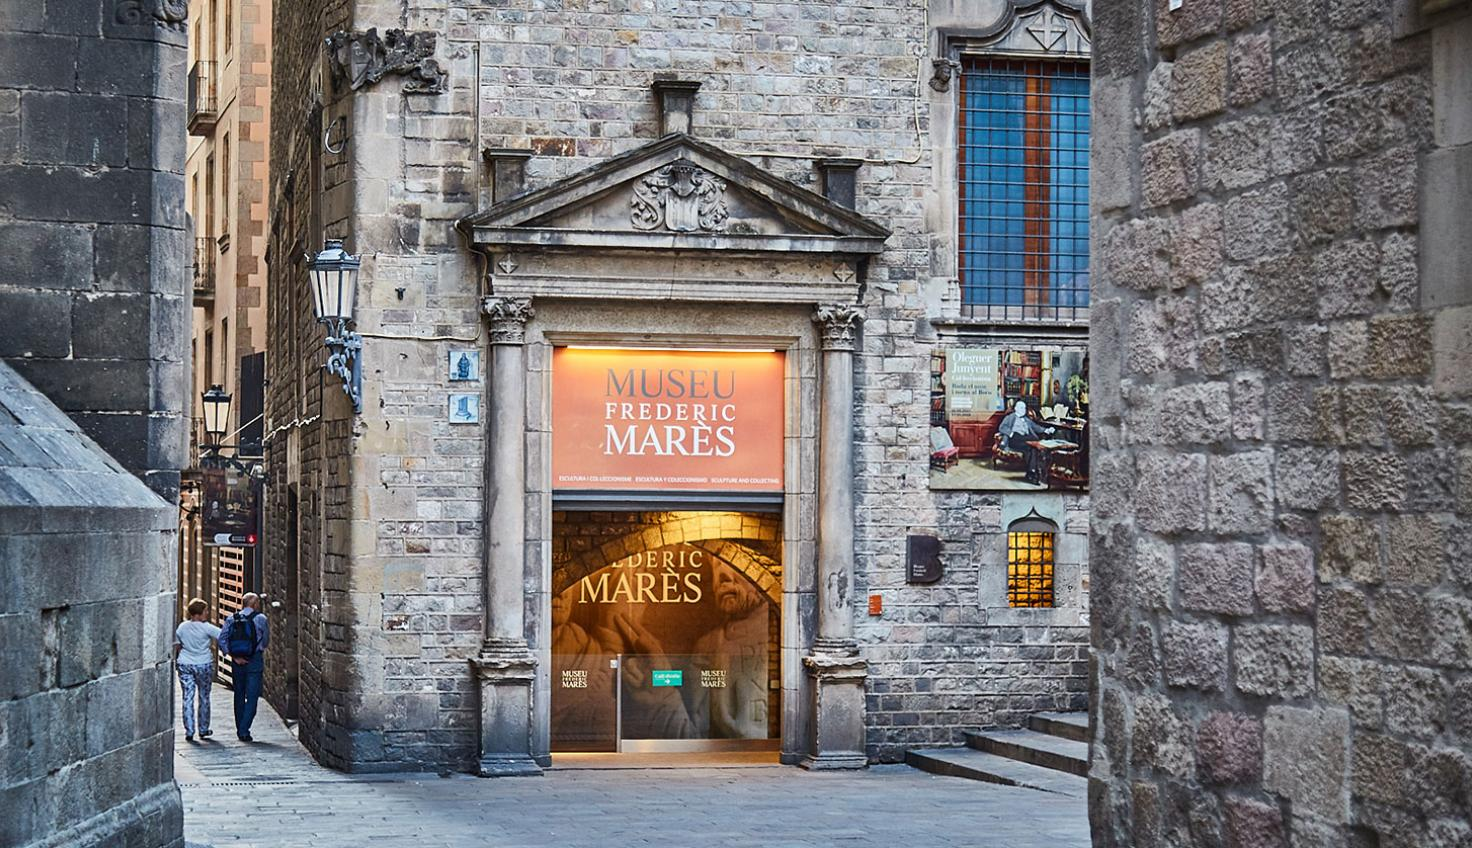 Photo Frederic Marès Museum of Barcelona